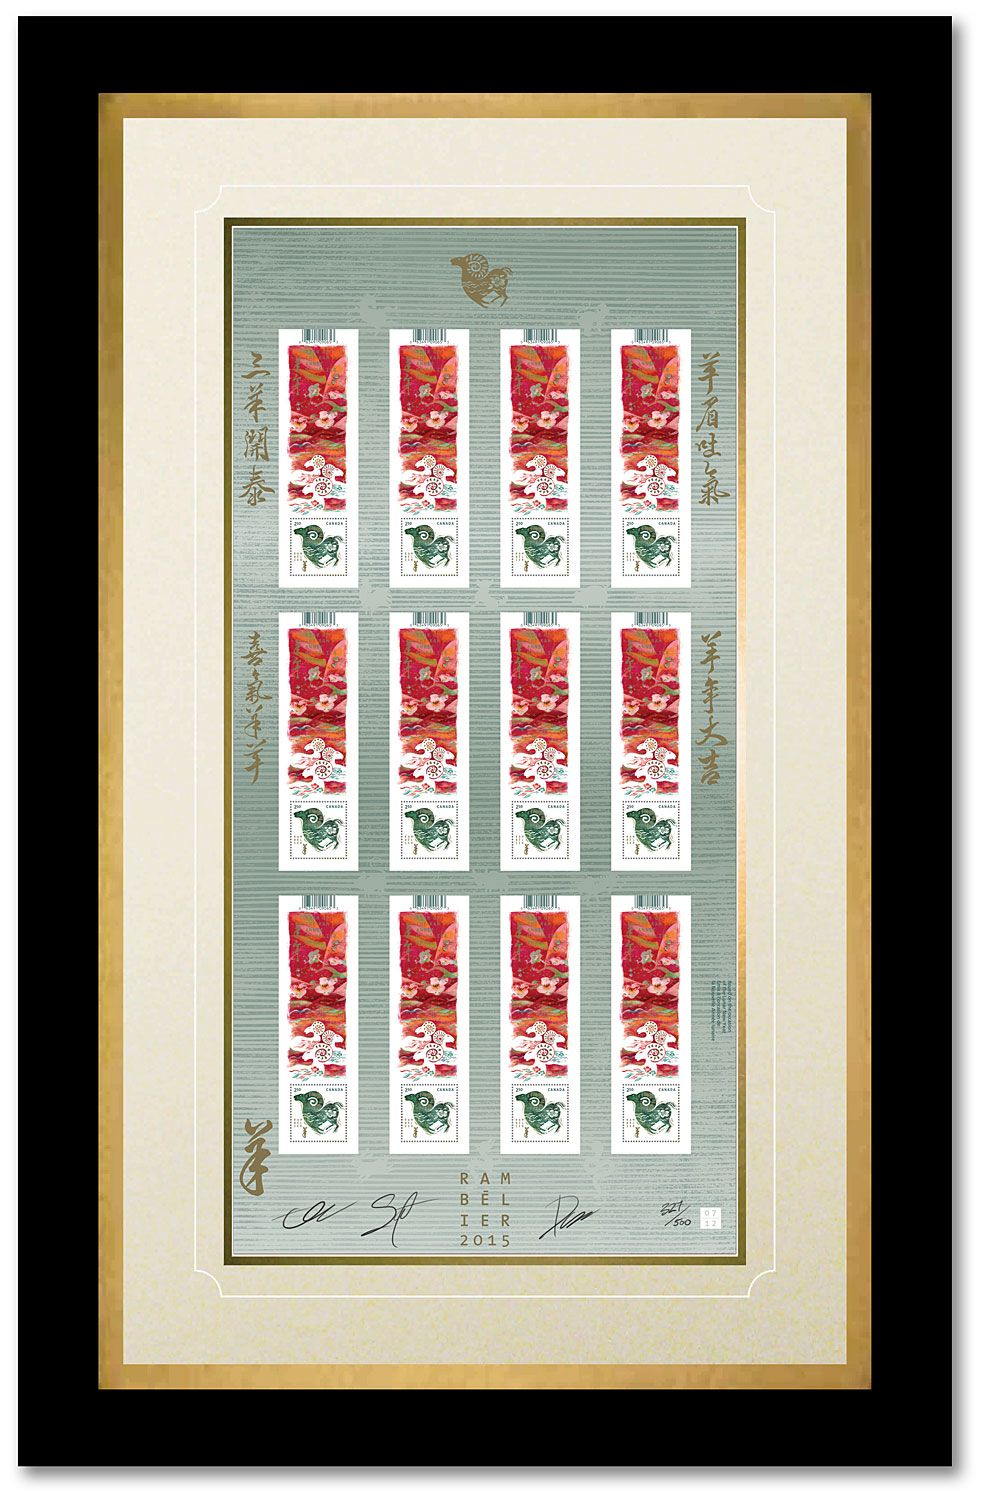 Canada Post - Year of the Ram: Framed Uncut Press Sheet